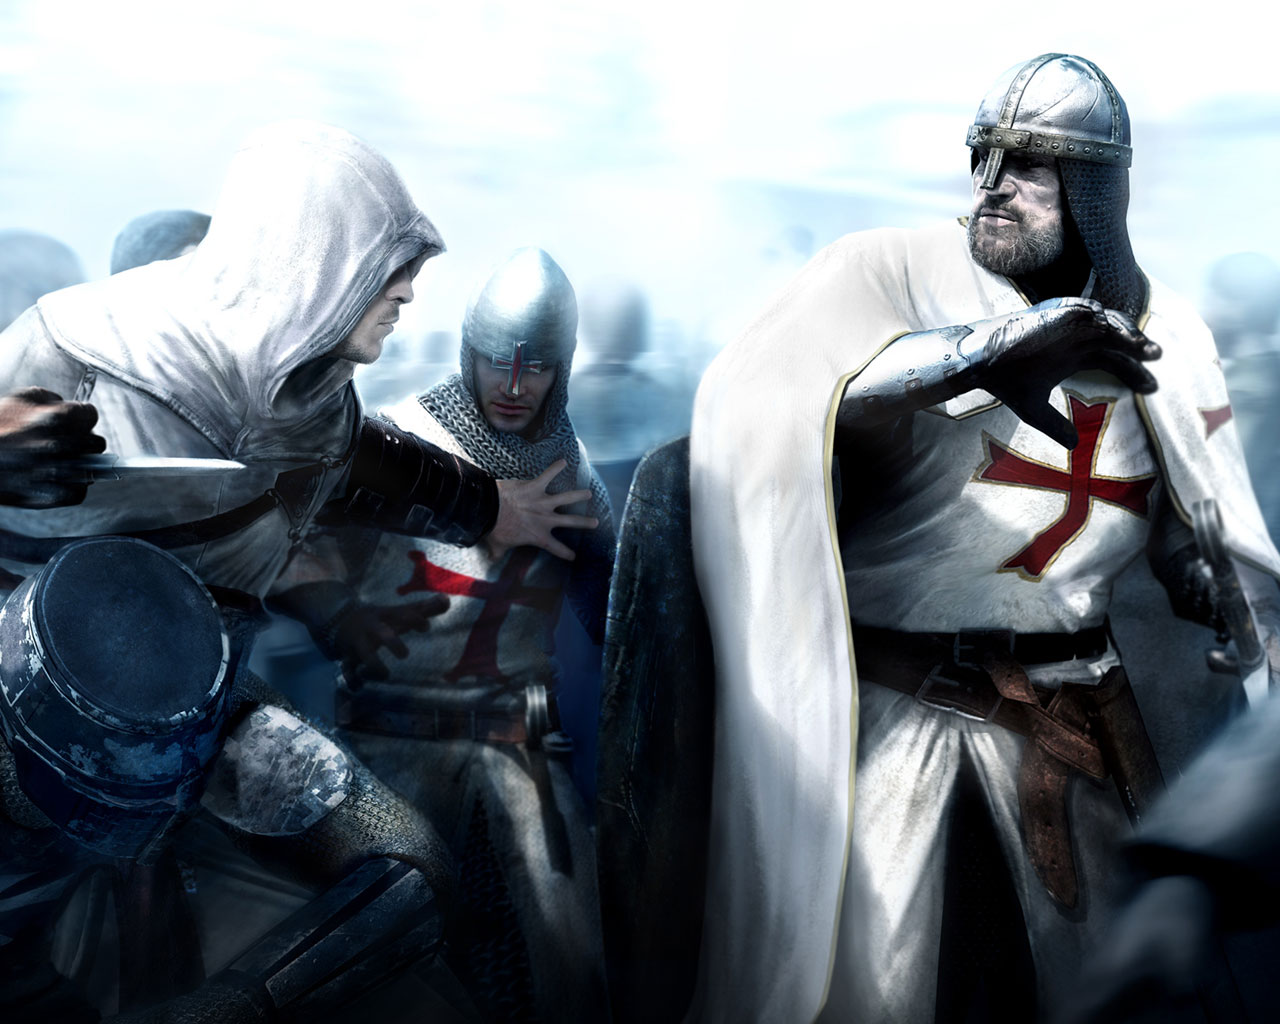 Knights Templar Wallpaper Images amp Pictures   Becuo 1280x1024